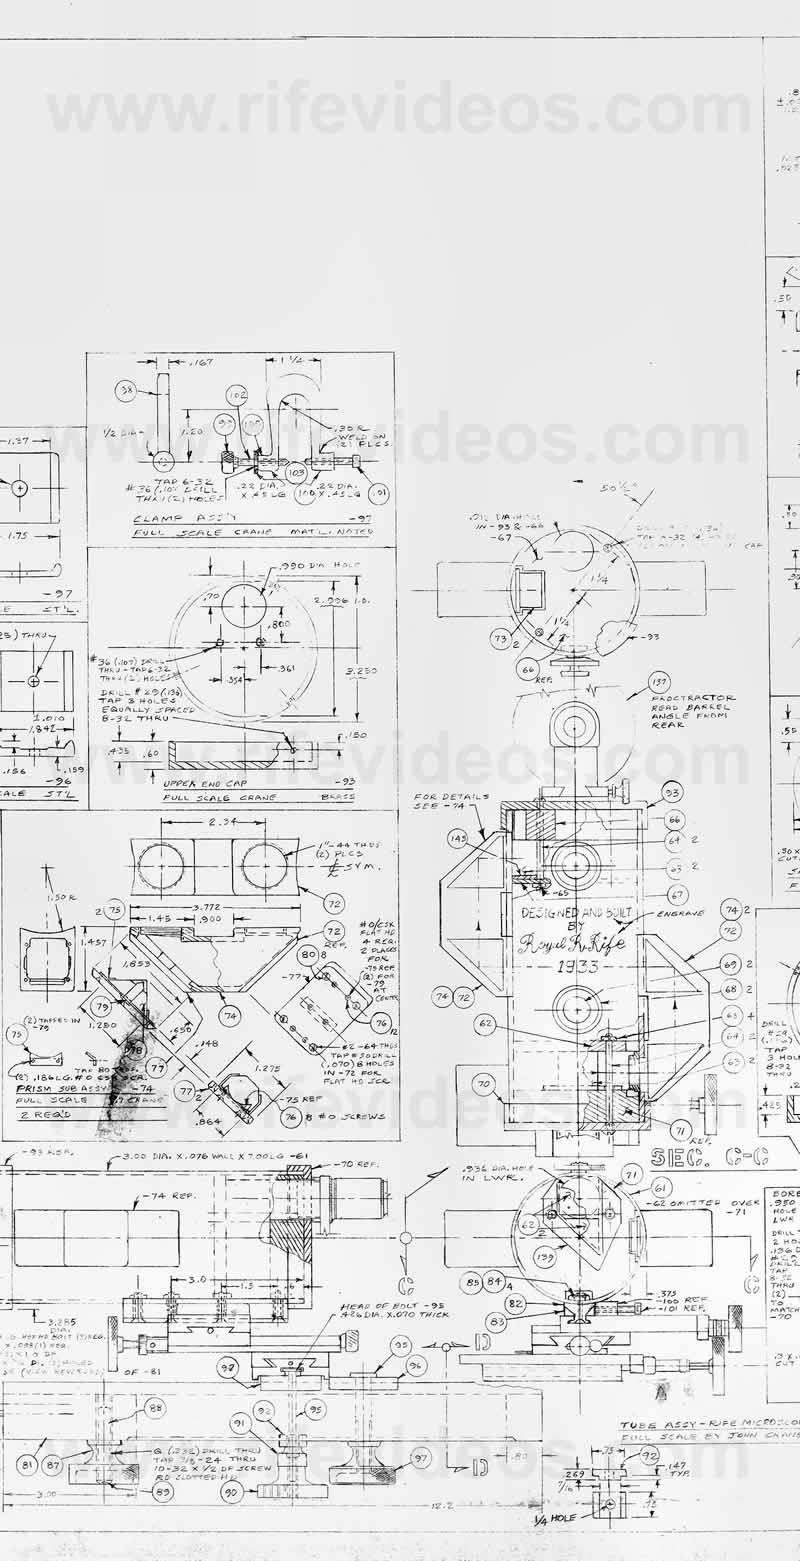 Blueprints For A Modern Four Bedroom Home: Dr. Rife's Universal Microscope Blueprints